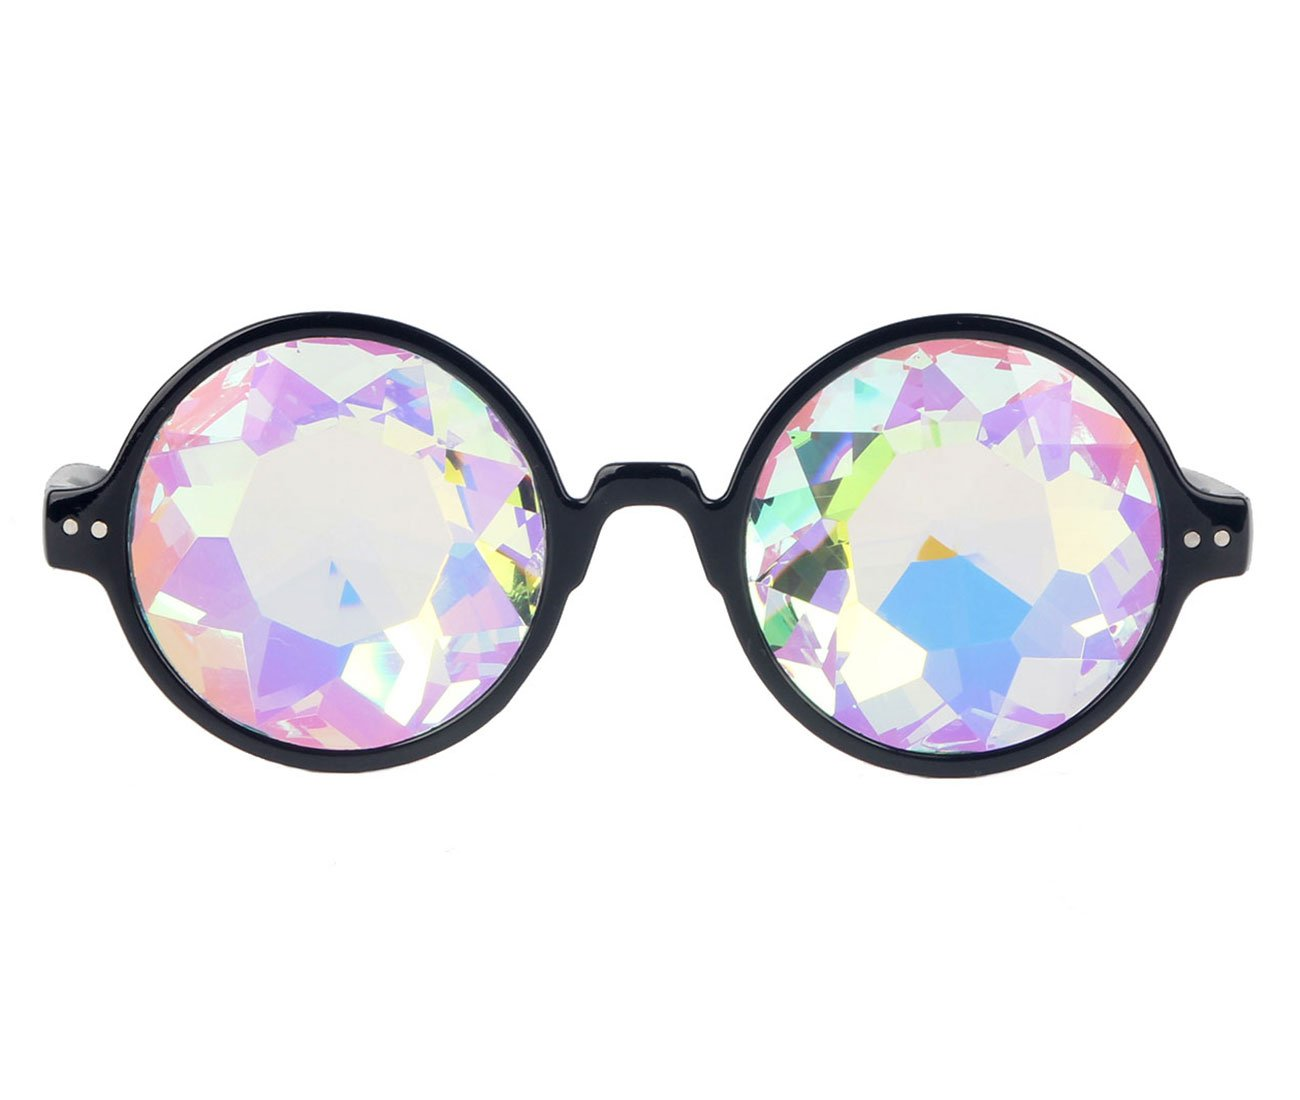 Amazon Prime Deals,Black/Pink/White Black Kaleidoscope Glasses- Rainbow Rave Prism Diffraction by Careonline (Image #2)